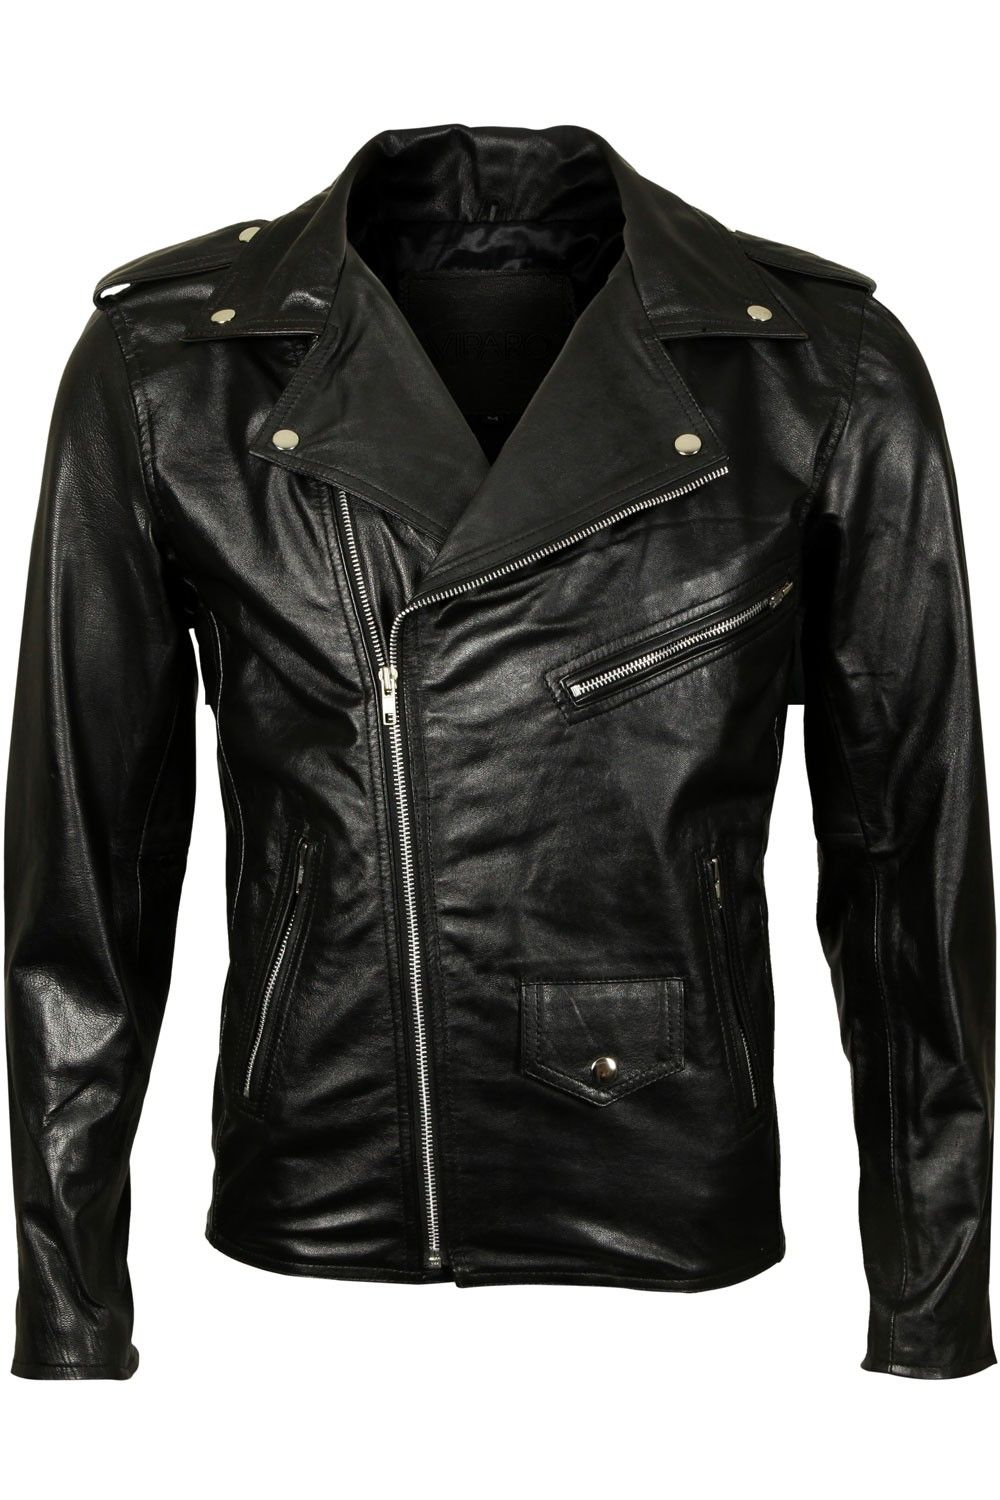 Mens Black Slim Classic Brando Leather Biker Jacket